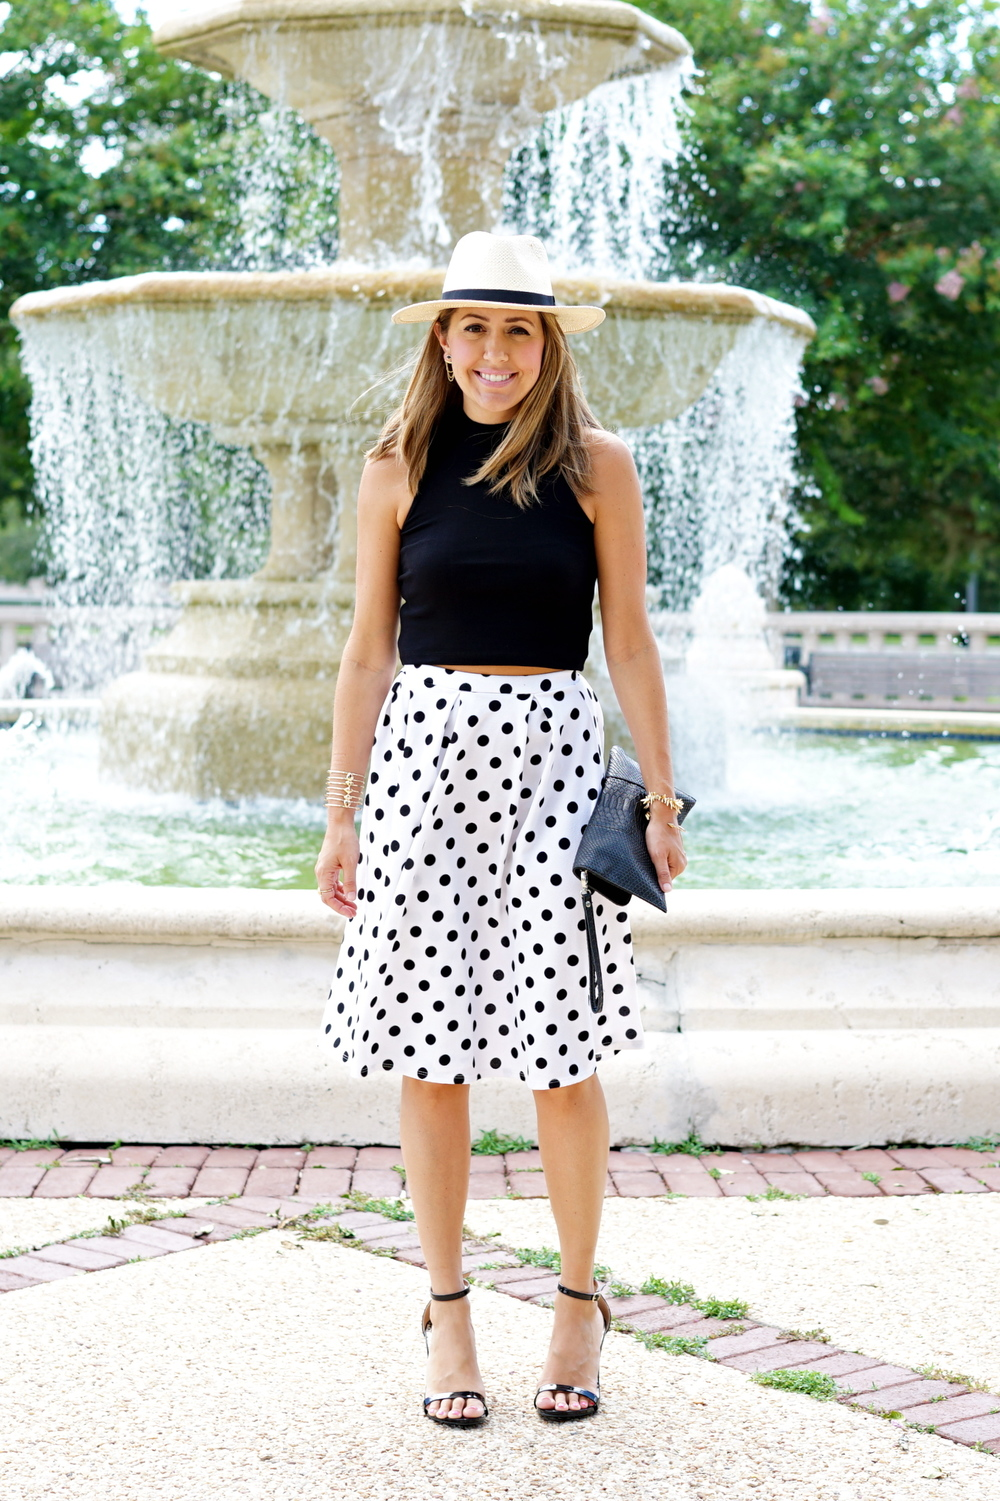 Black sleeveless turtleneck, full polka dot skirt